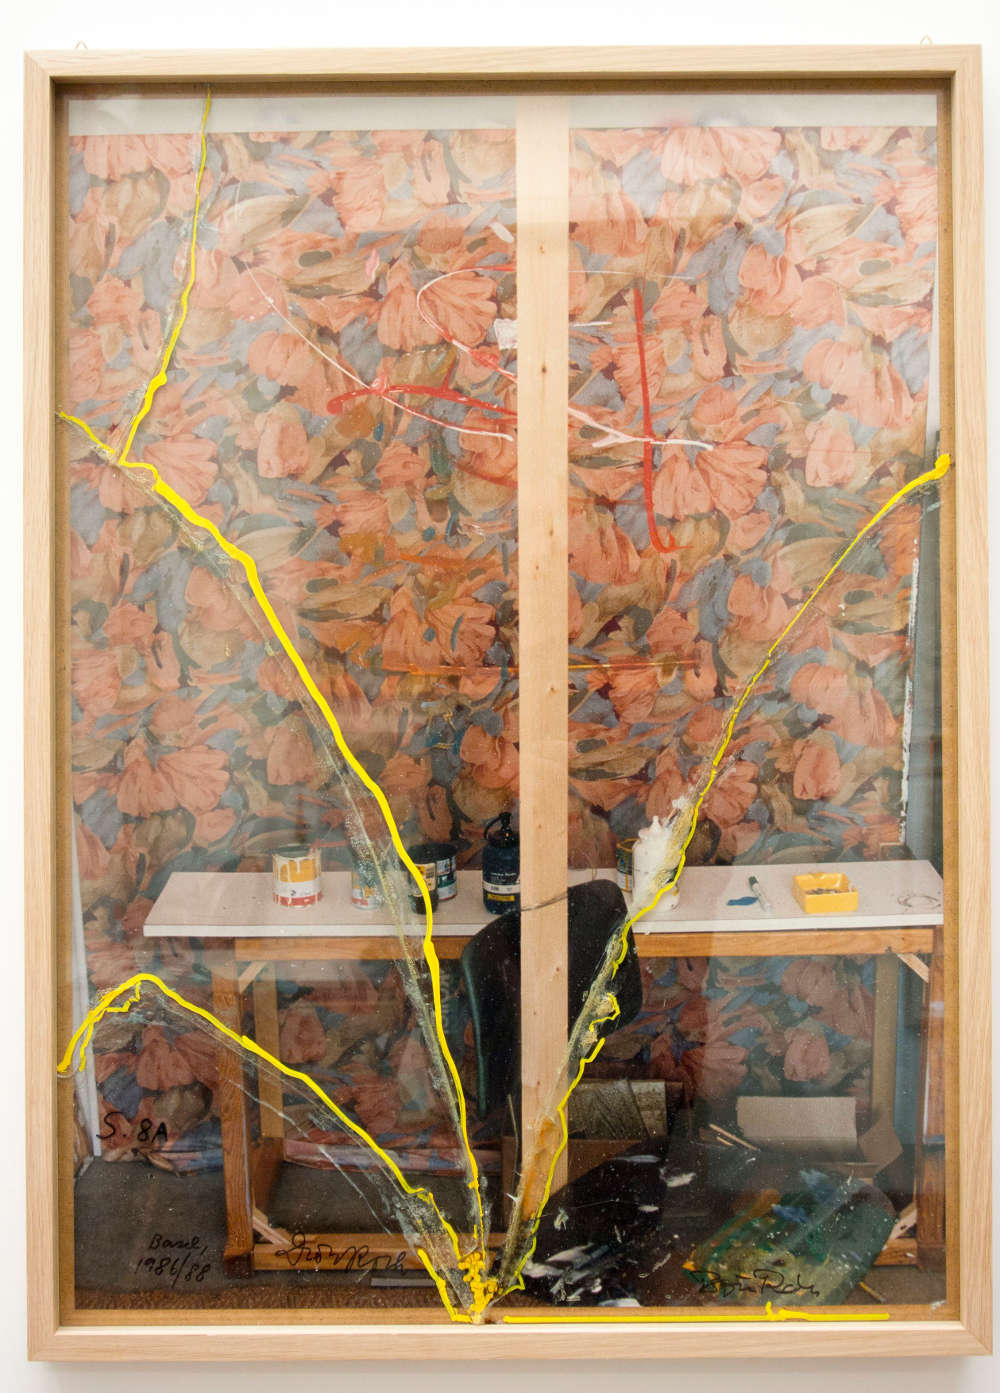 Dieter Roth, Back Cloth (Painting-Photo) (with Björn Roth), 1986/1988. Color photography, in broken and glued glass, aluminum frame 70 x 50 cm / 27 1/2 x 19 5/8 in © Dieter Roth Estate. Courtesy the Estate and Hauser & Wirth